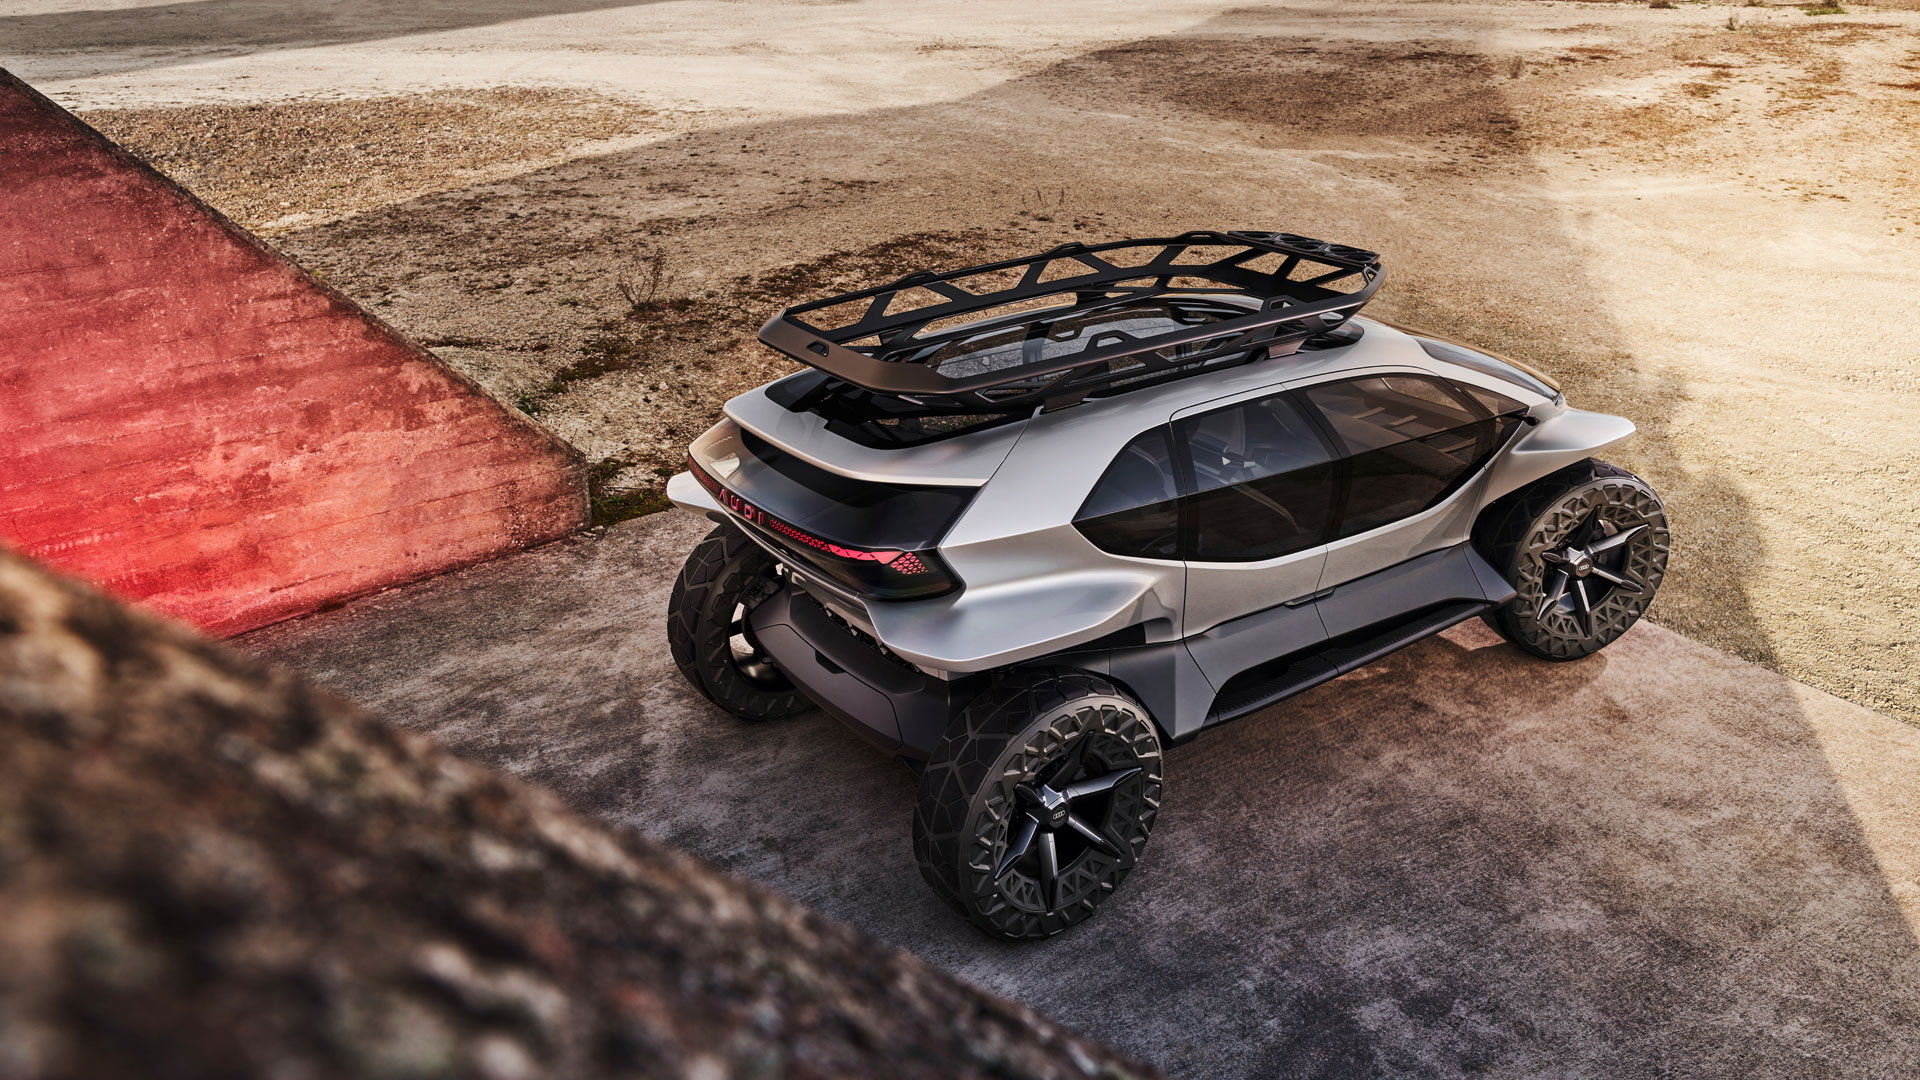 Concept Car Audi AI:TRAIL exterior with luggage rack